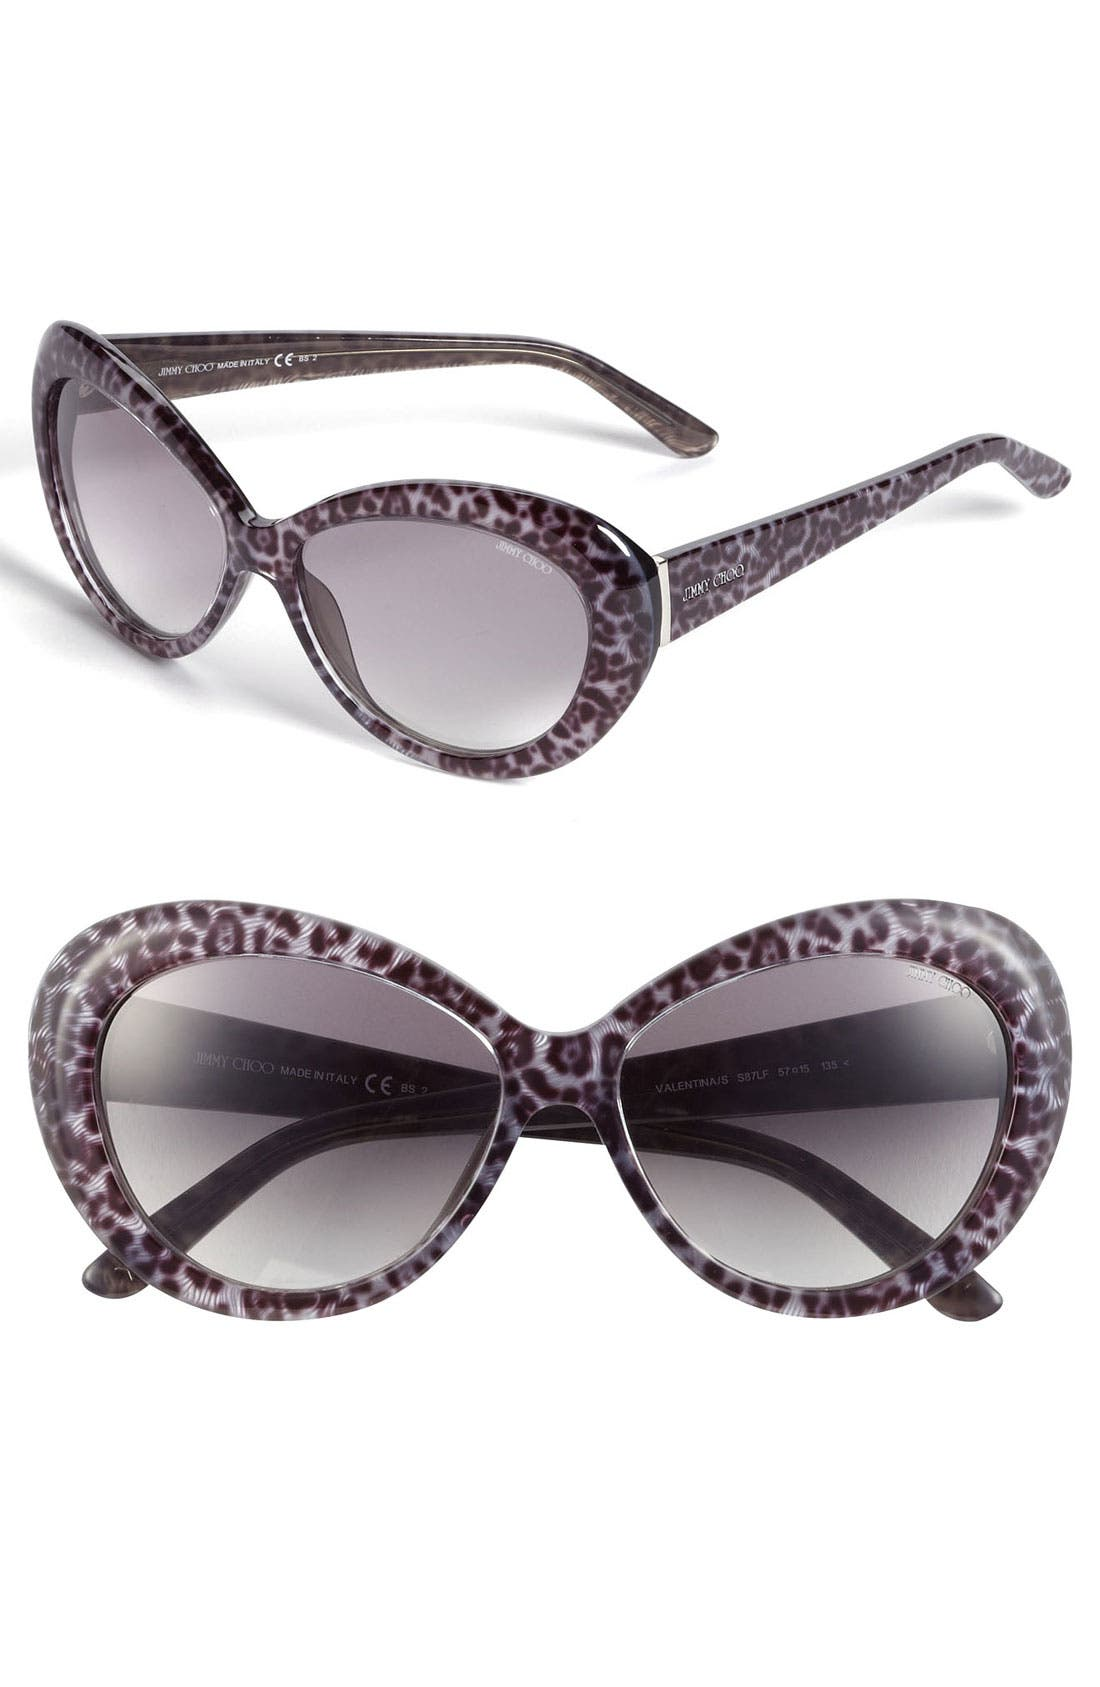 Alternate Image 1 Selected - Jimmy Choo 'Valentina' 57mm Cat Eye Sunglasses